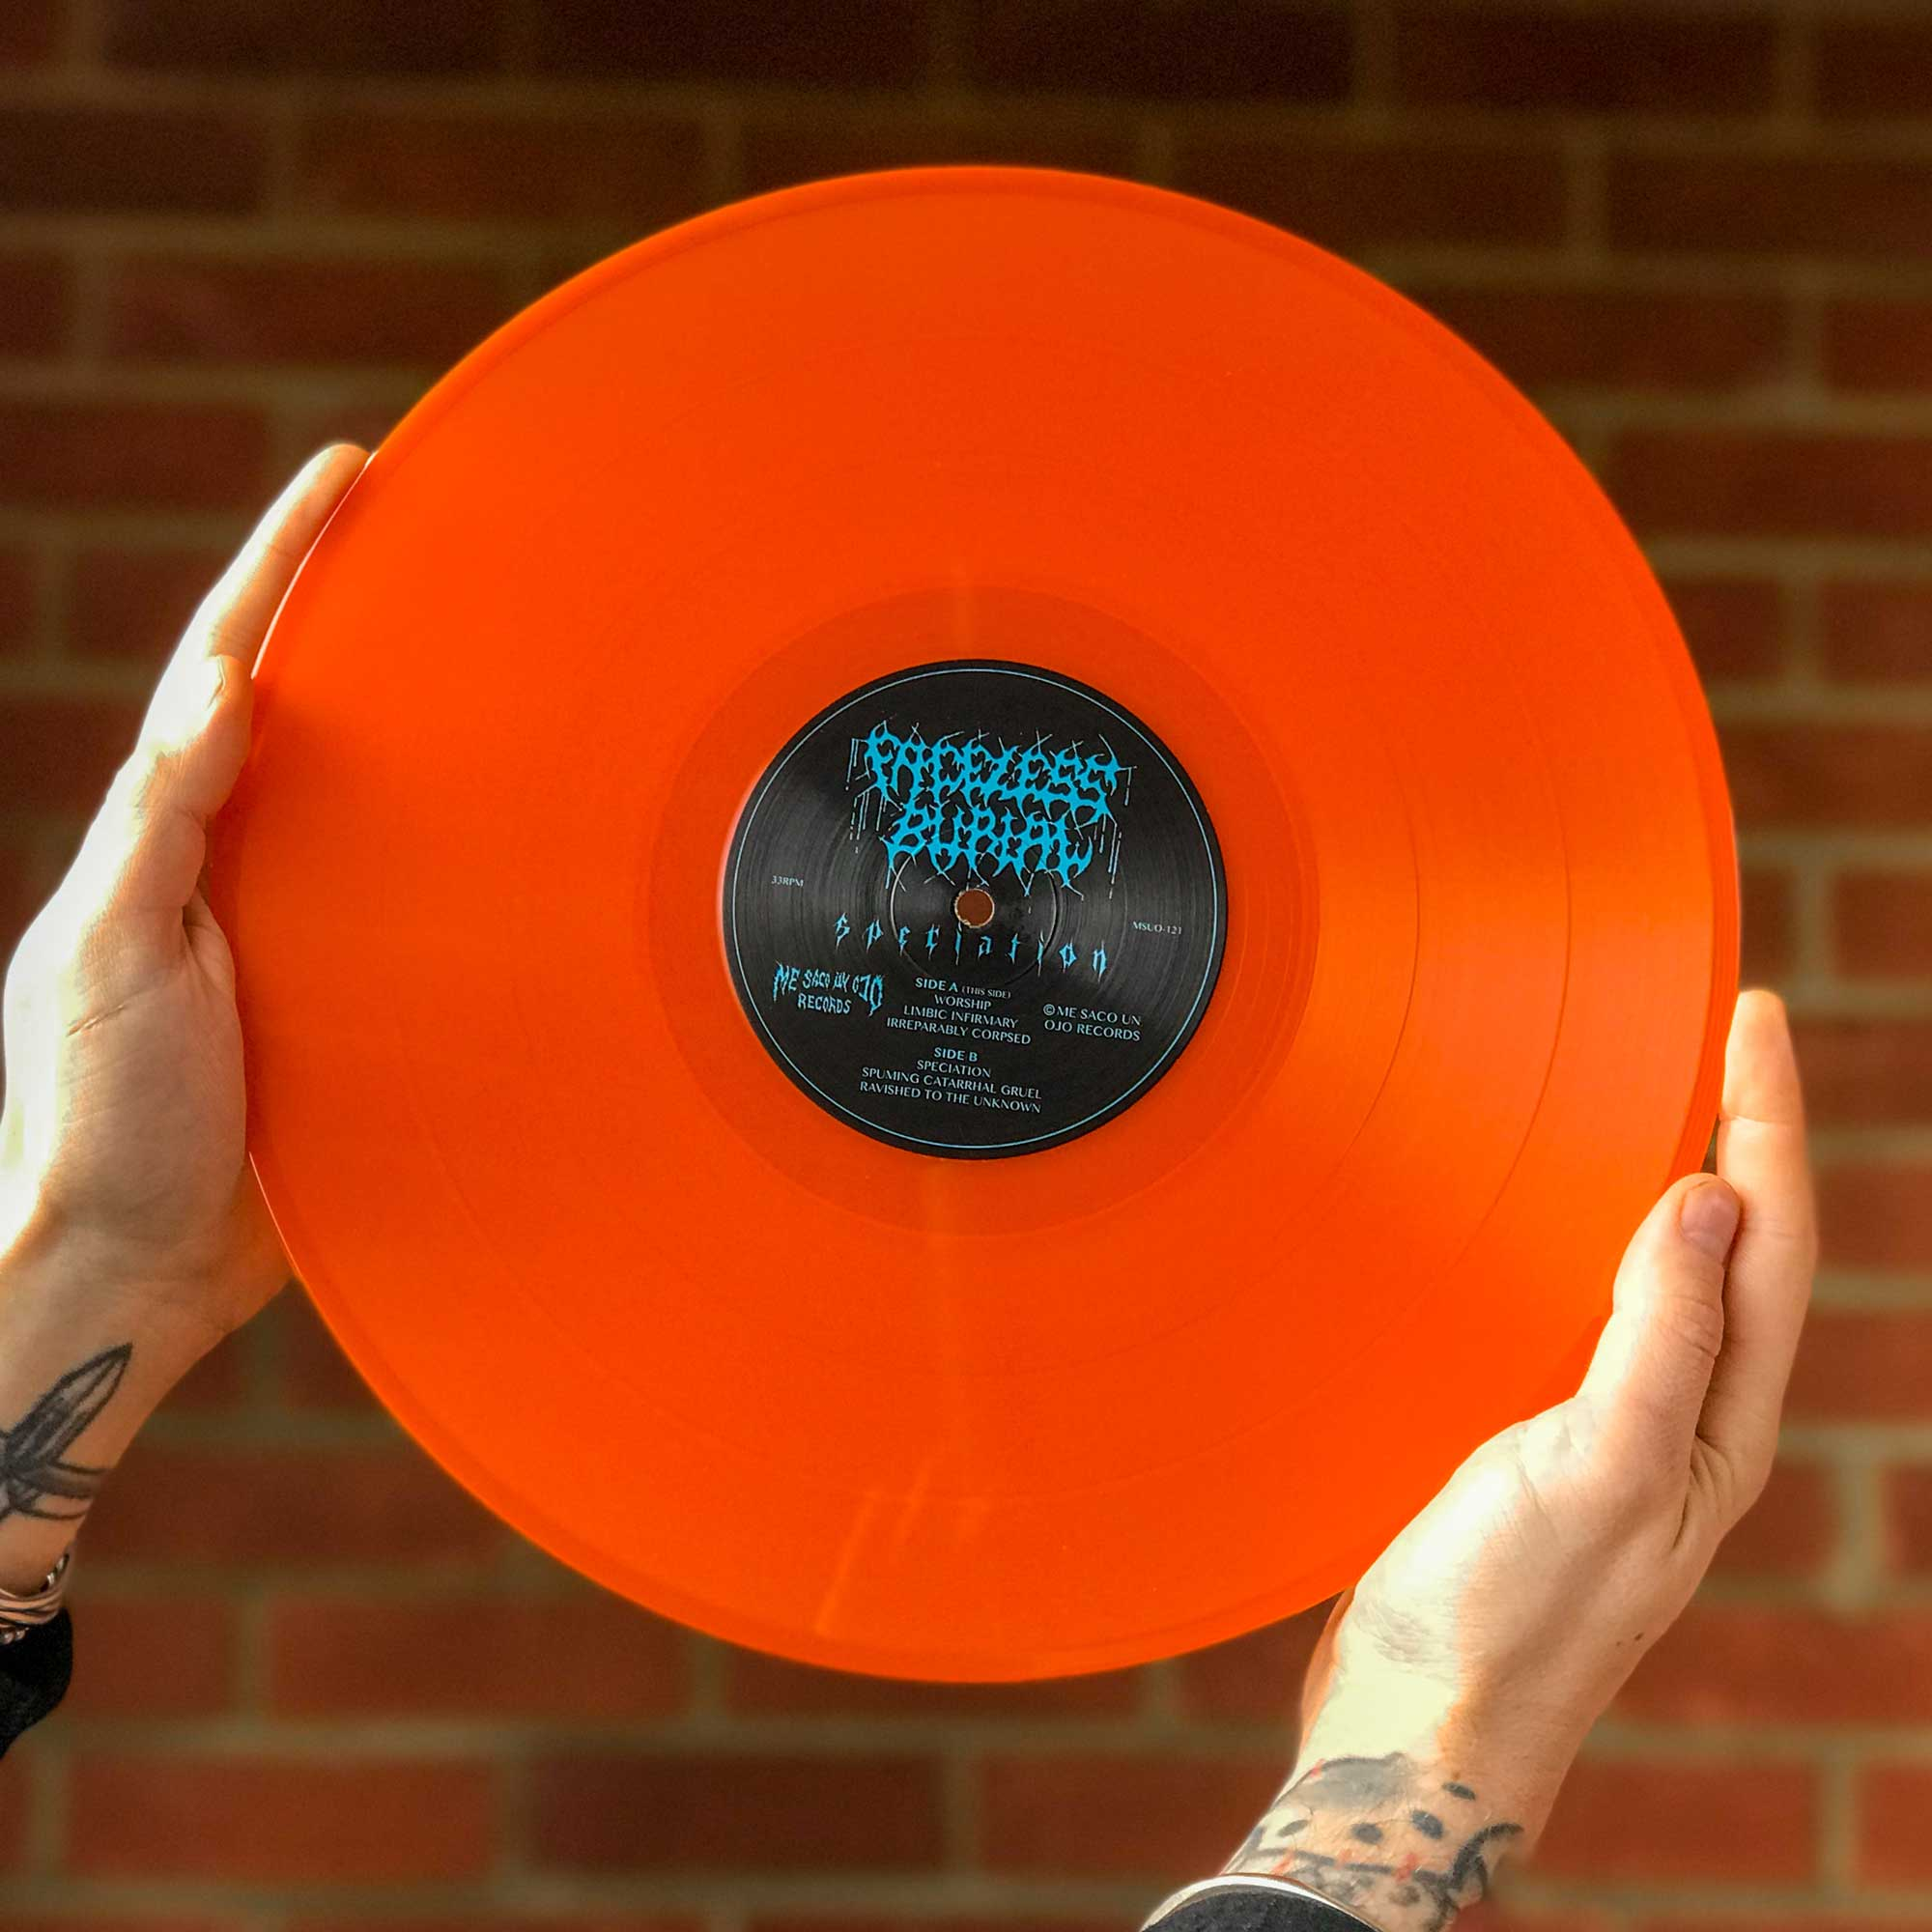 A photo of the Speciation vinyl in Orange Crush colour